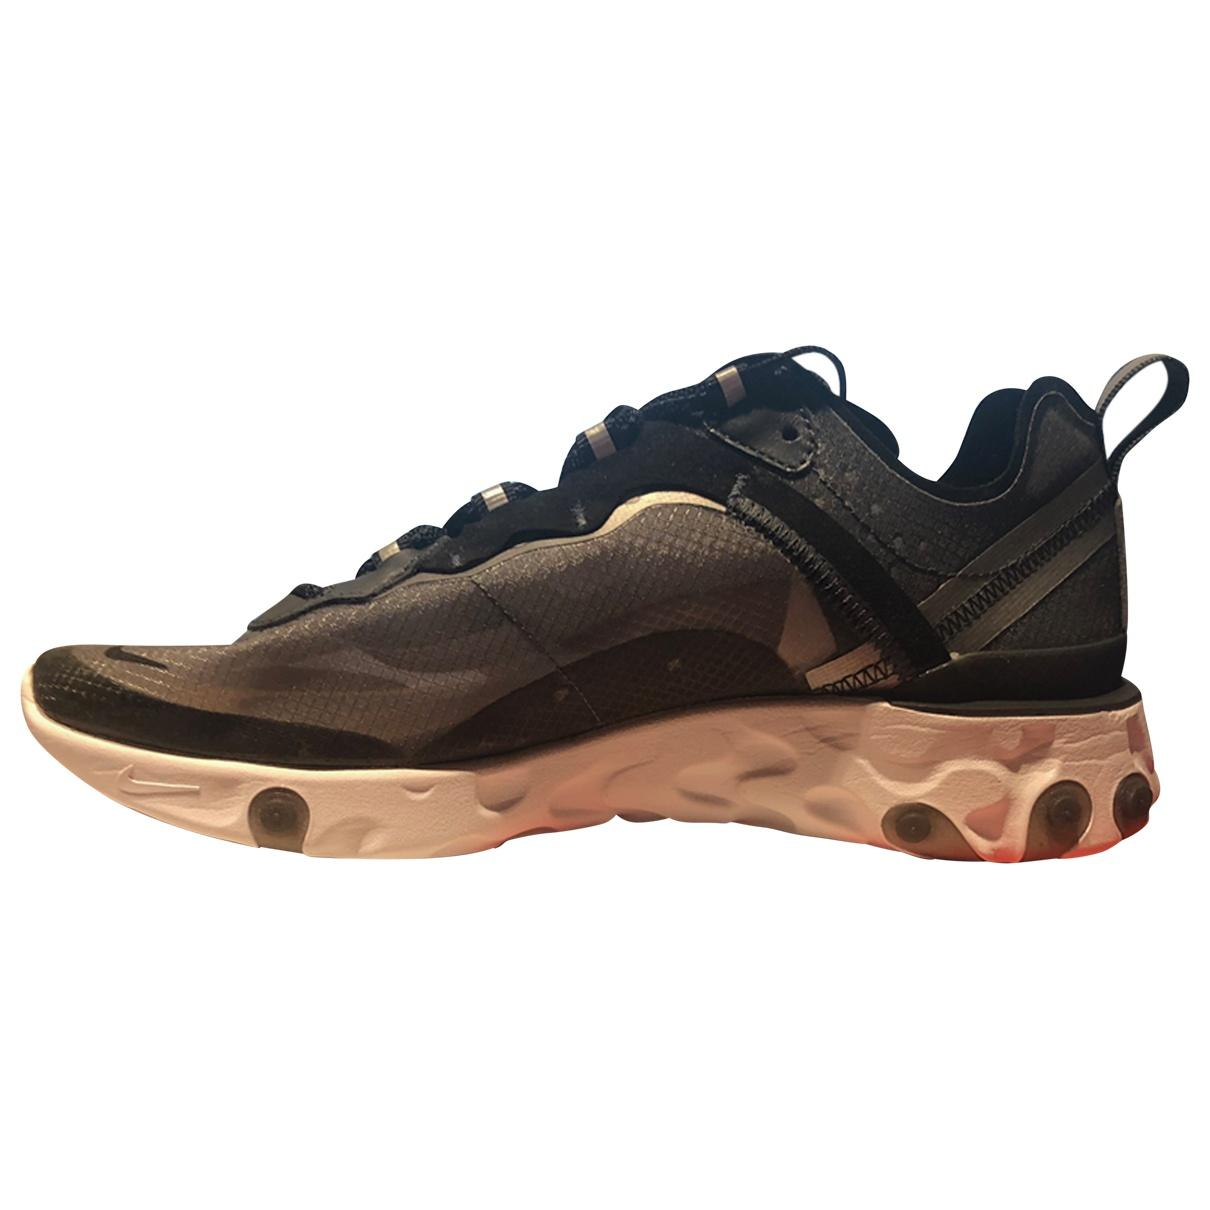 reputable site d91dd 7536d Nike Cloth Trainers in Black - Lyst